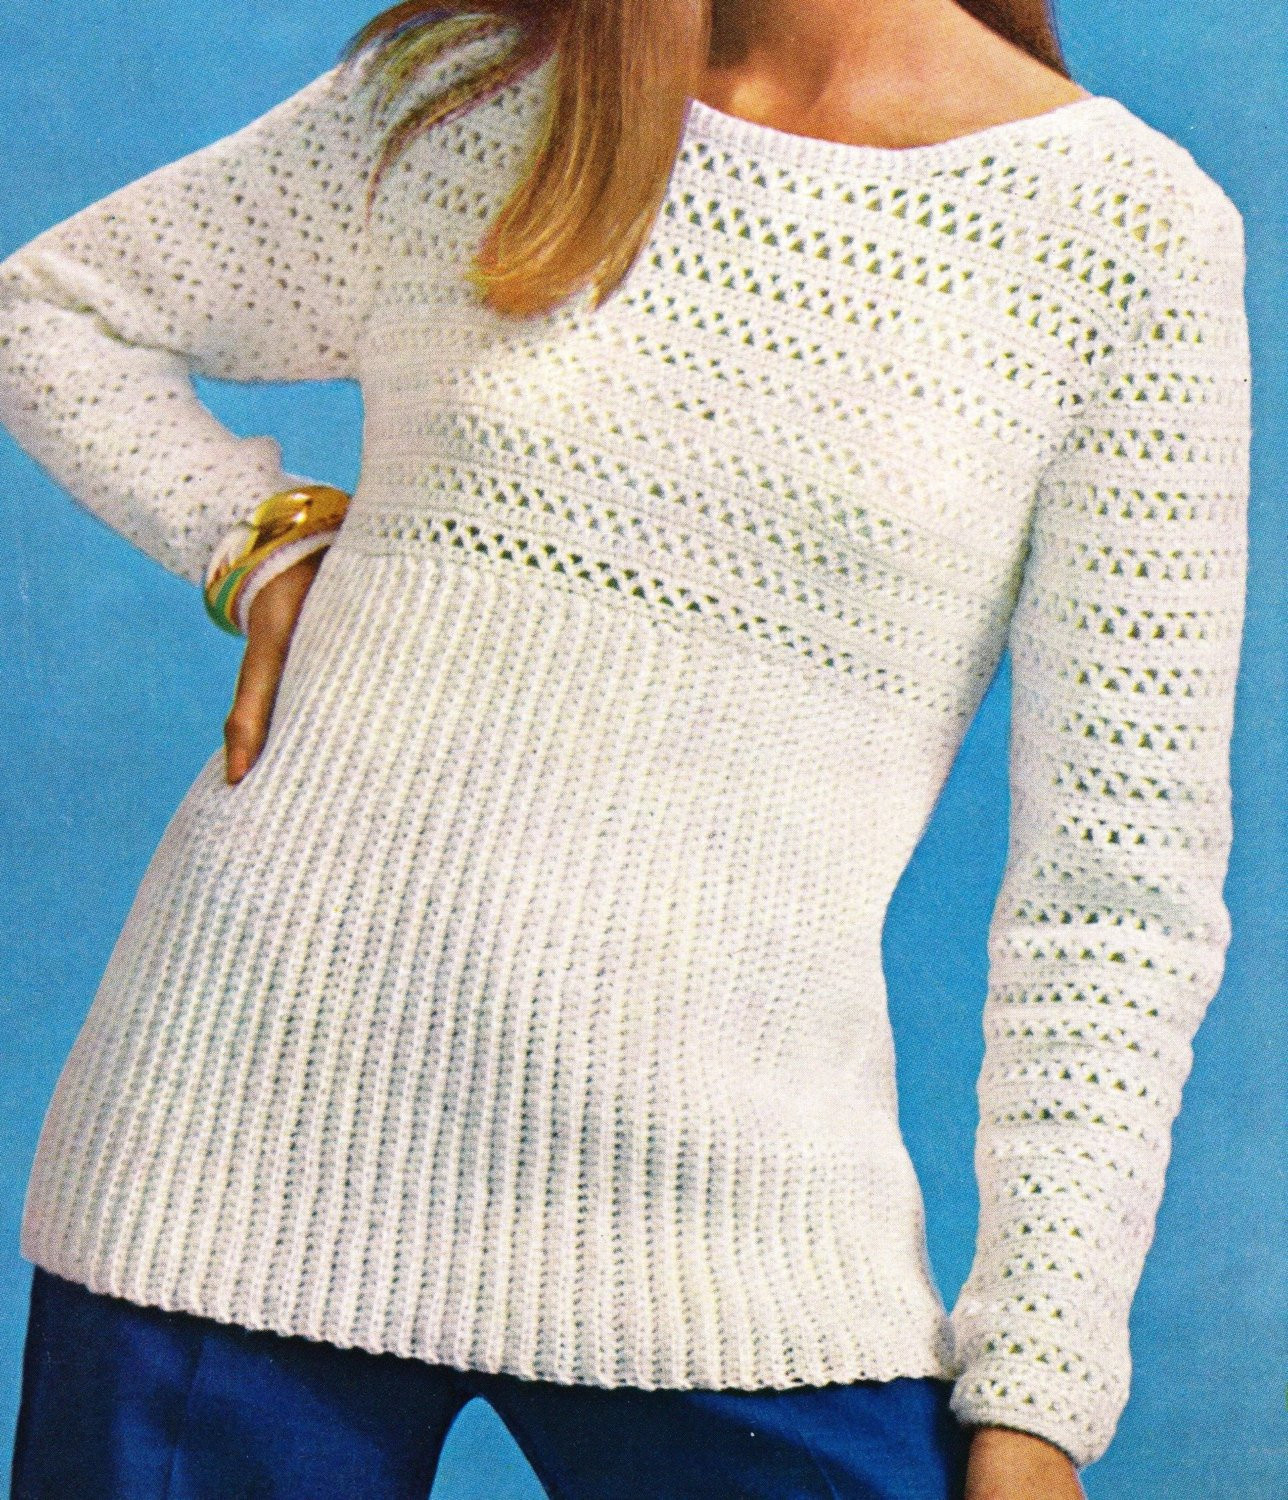 Inspirational Crochet Sweater Pullover Pattern Womens Crochet Sweater Crochet Patterns for Women's Sweaters Of Top 48 Photos Crochet Patterns for Women\'s Sweaters